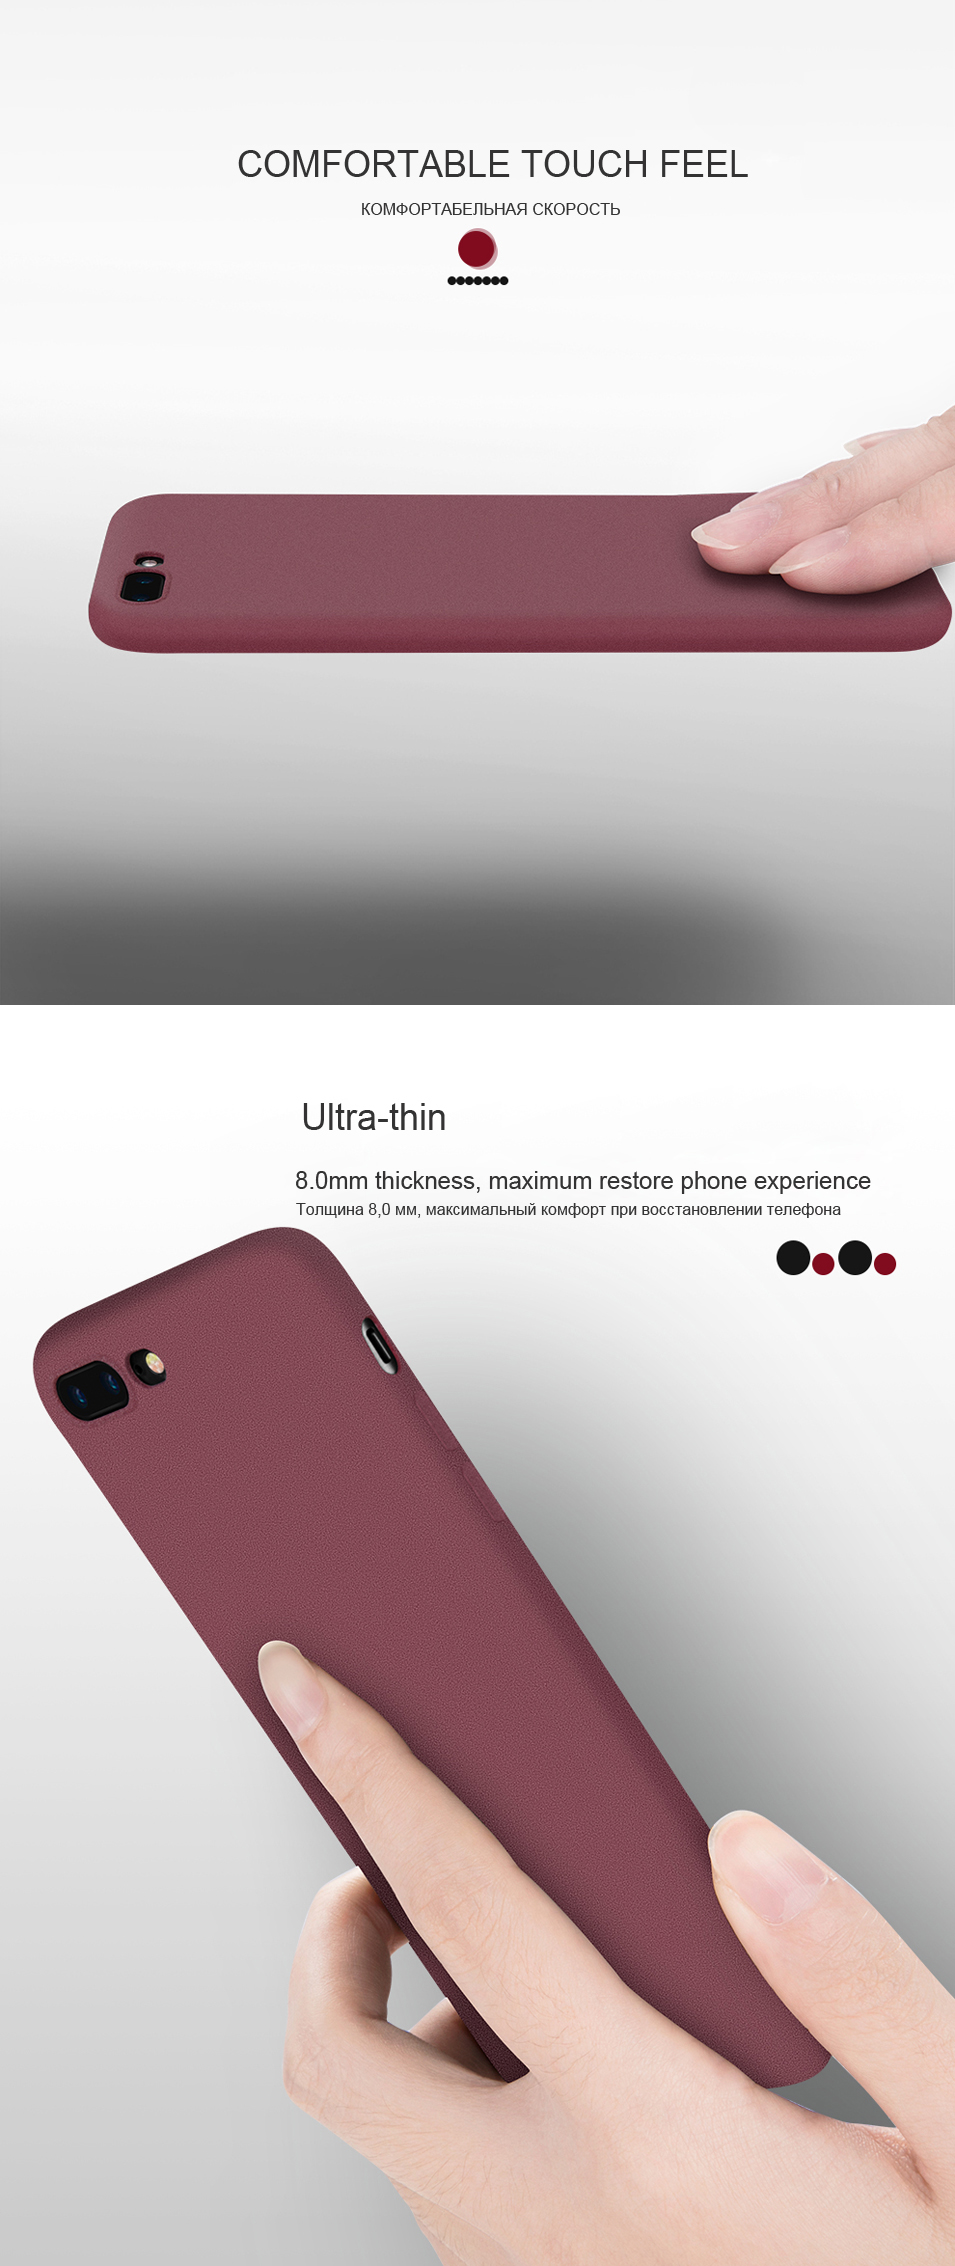 LECAYEE For Huawei Honor A7 Pro Phone Cases for Honor 8 9 10 Lite 7X 6C Pro 5A 6X View 10 Case Cover Matte Touch Soft TPU Bumper (12)